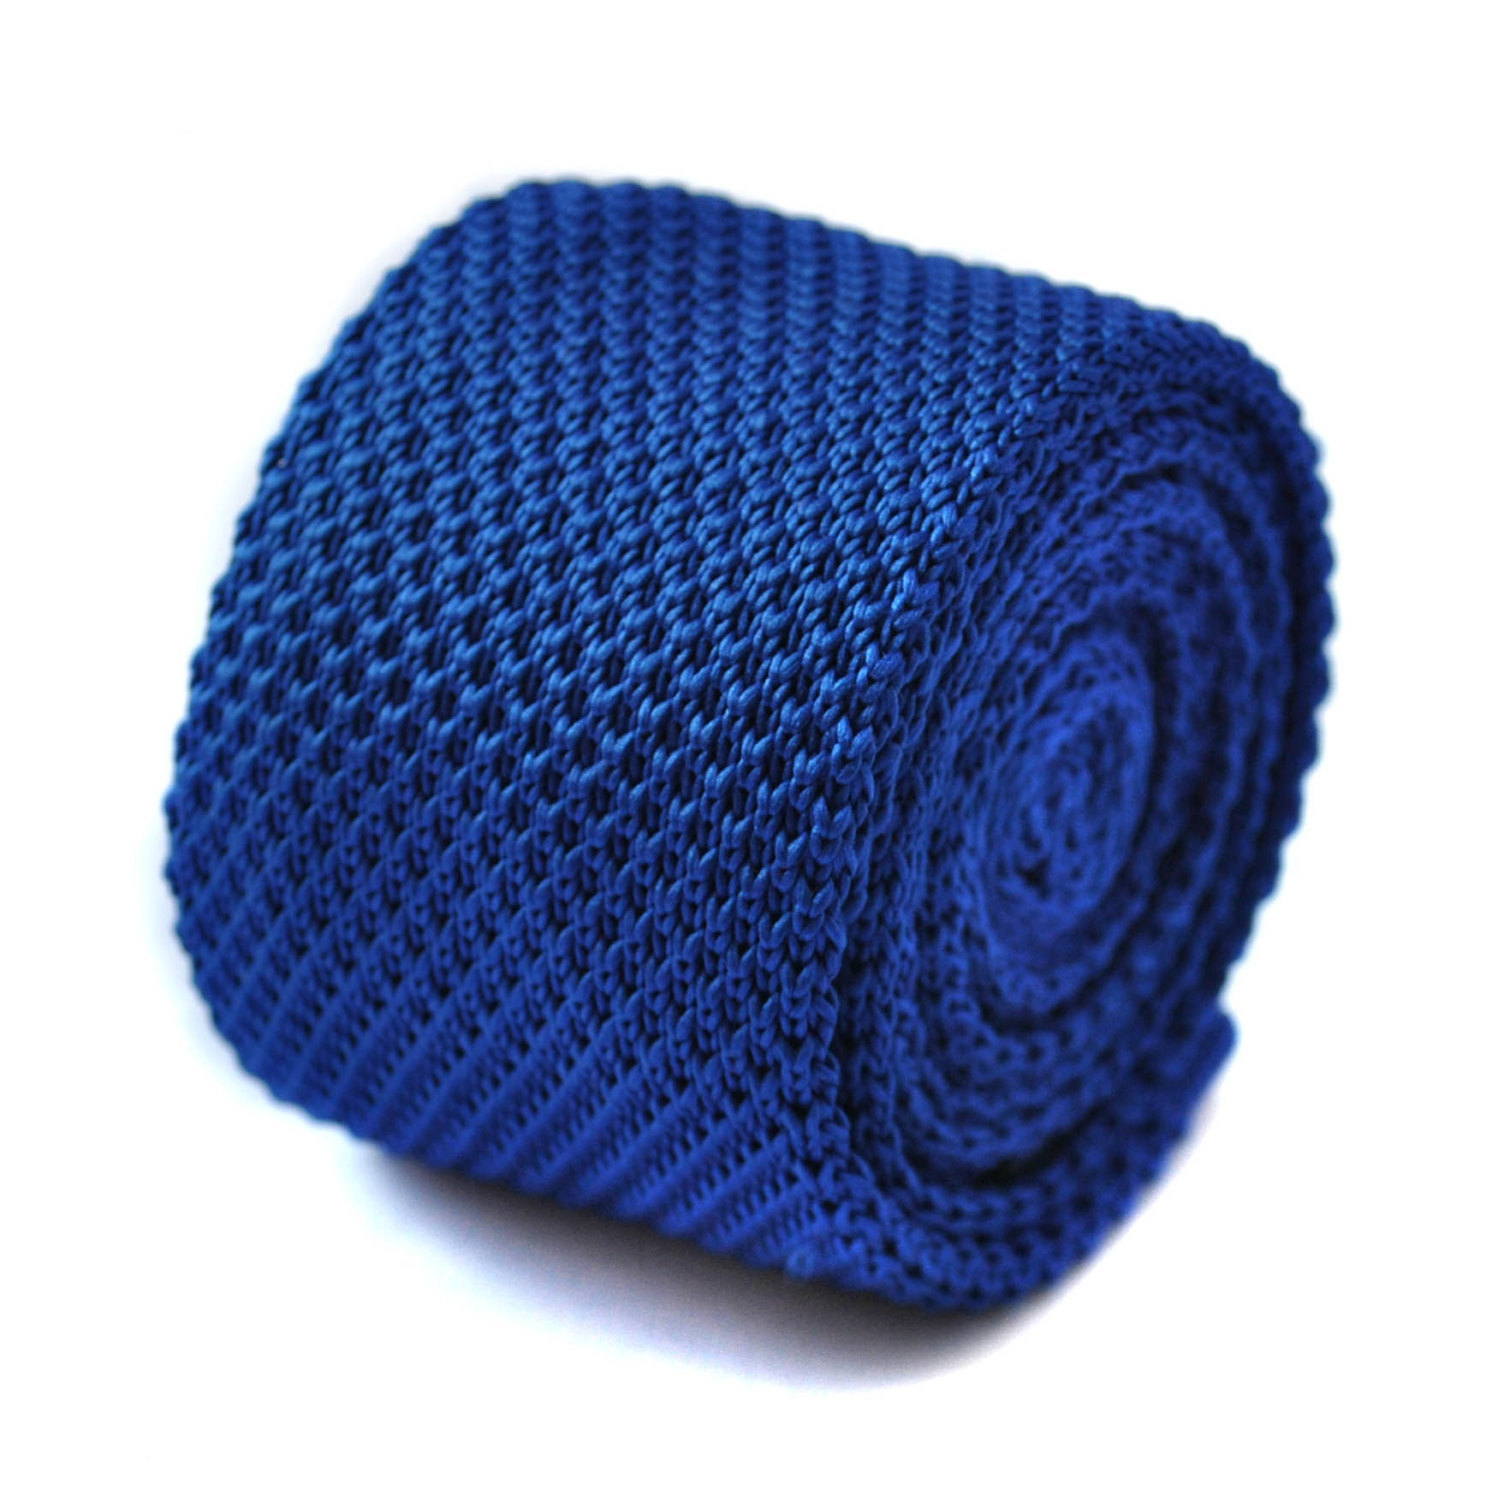 Knitted plain royal blue tie with pointed end by Frederick Thomas FT261